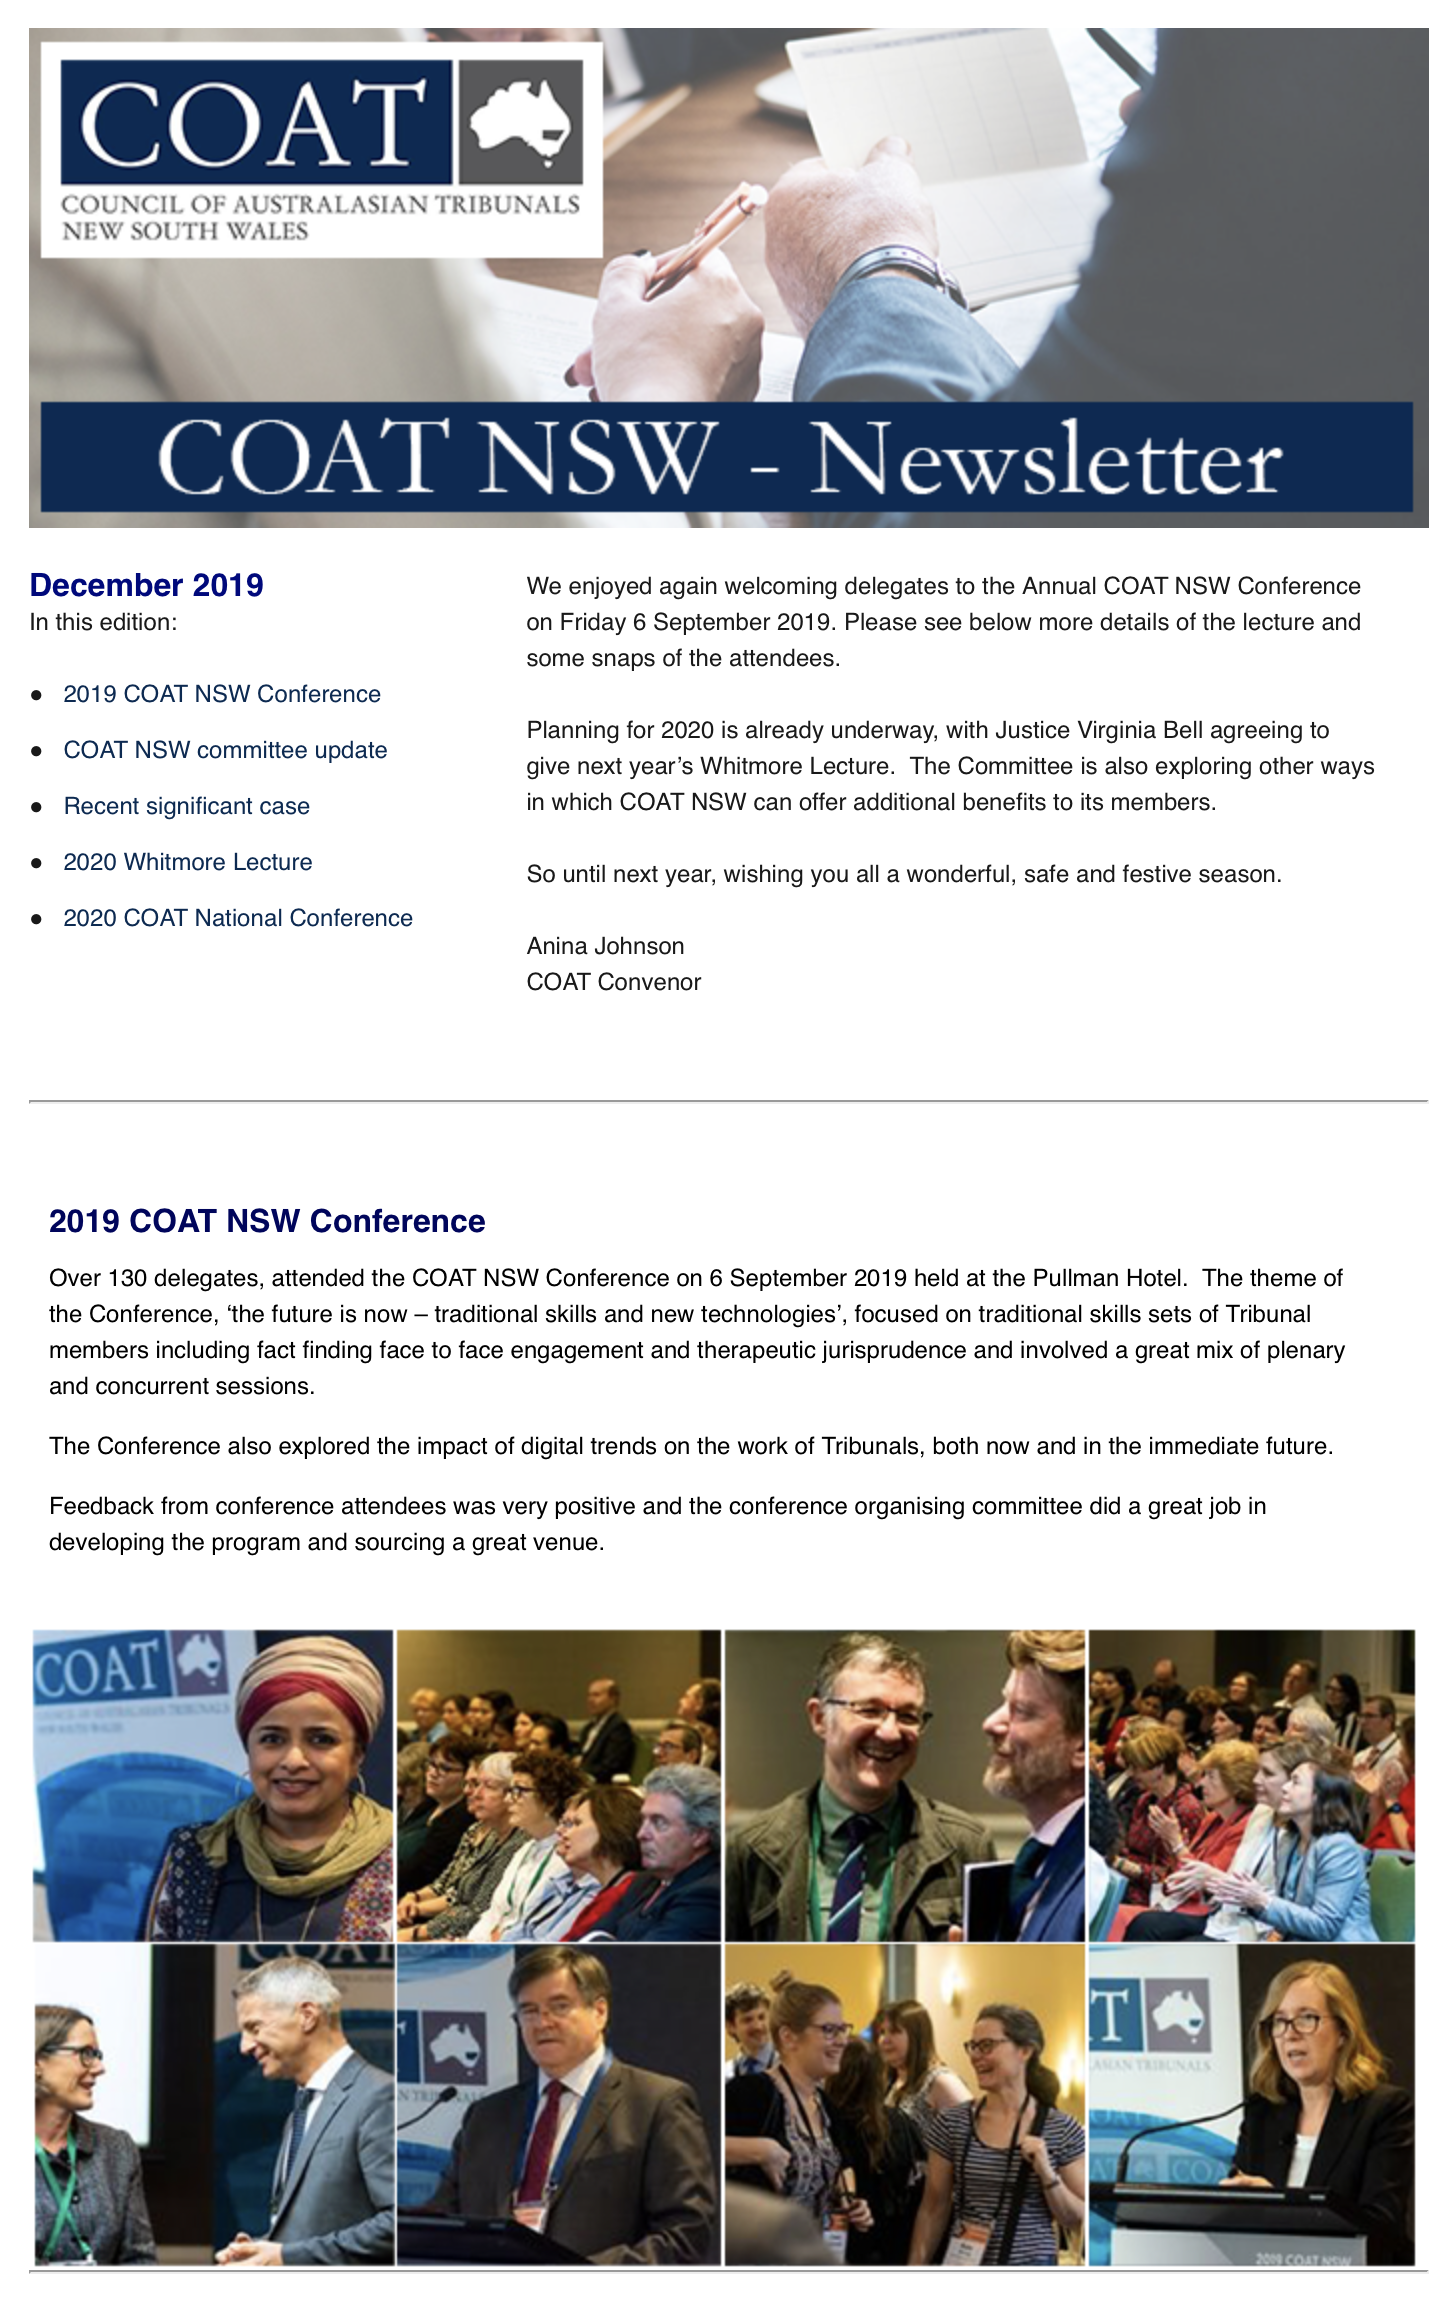 December 2019 Newsletter - COAT NSW